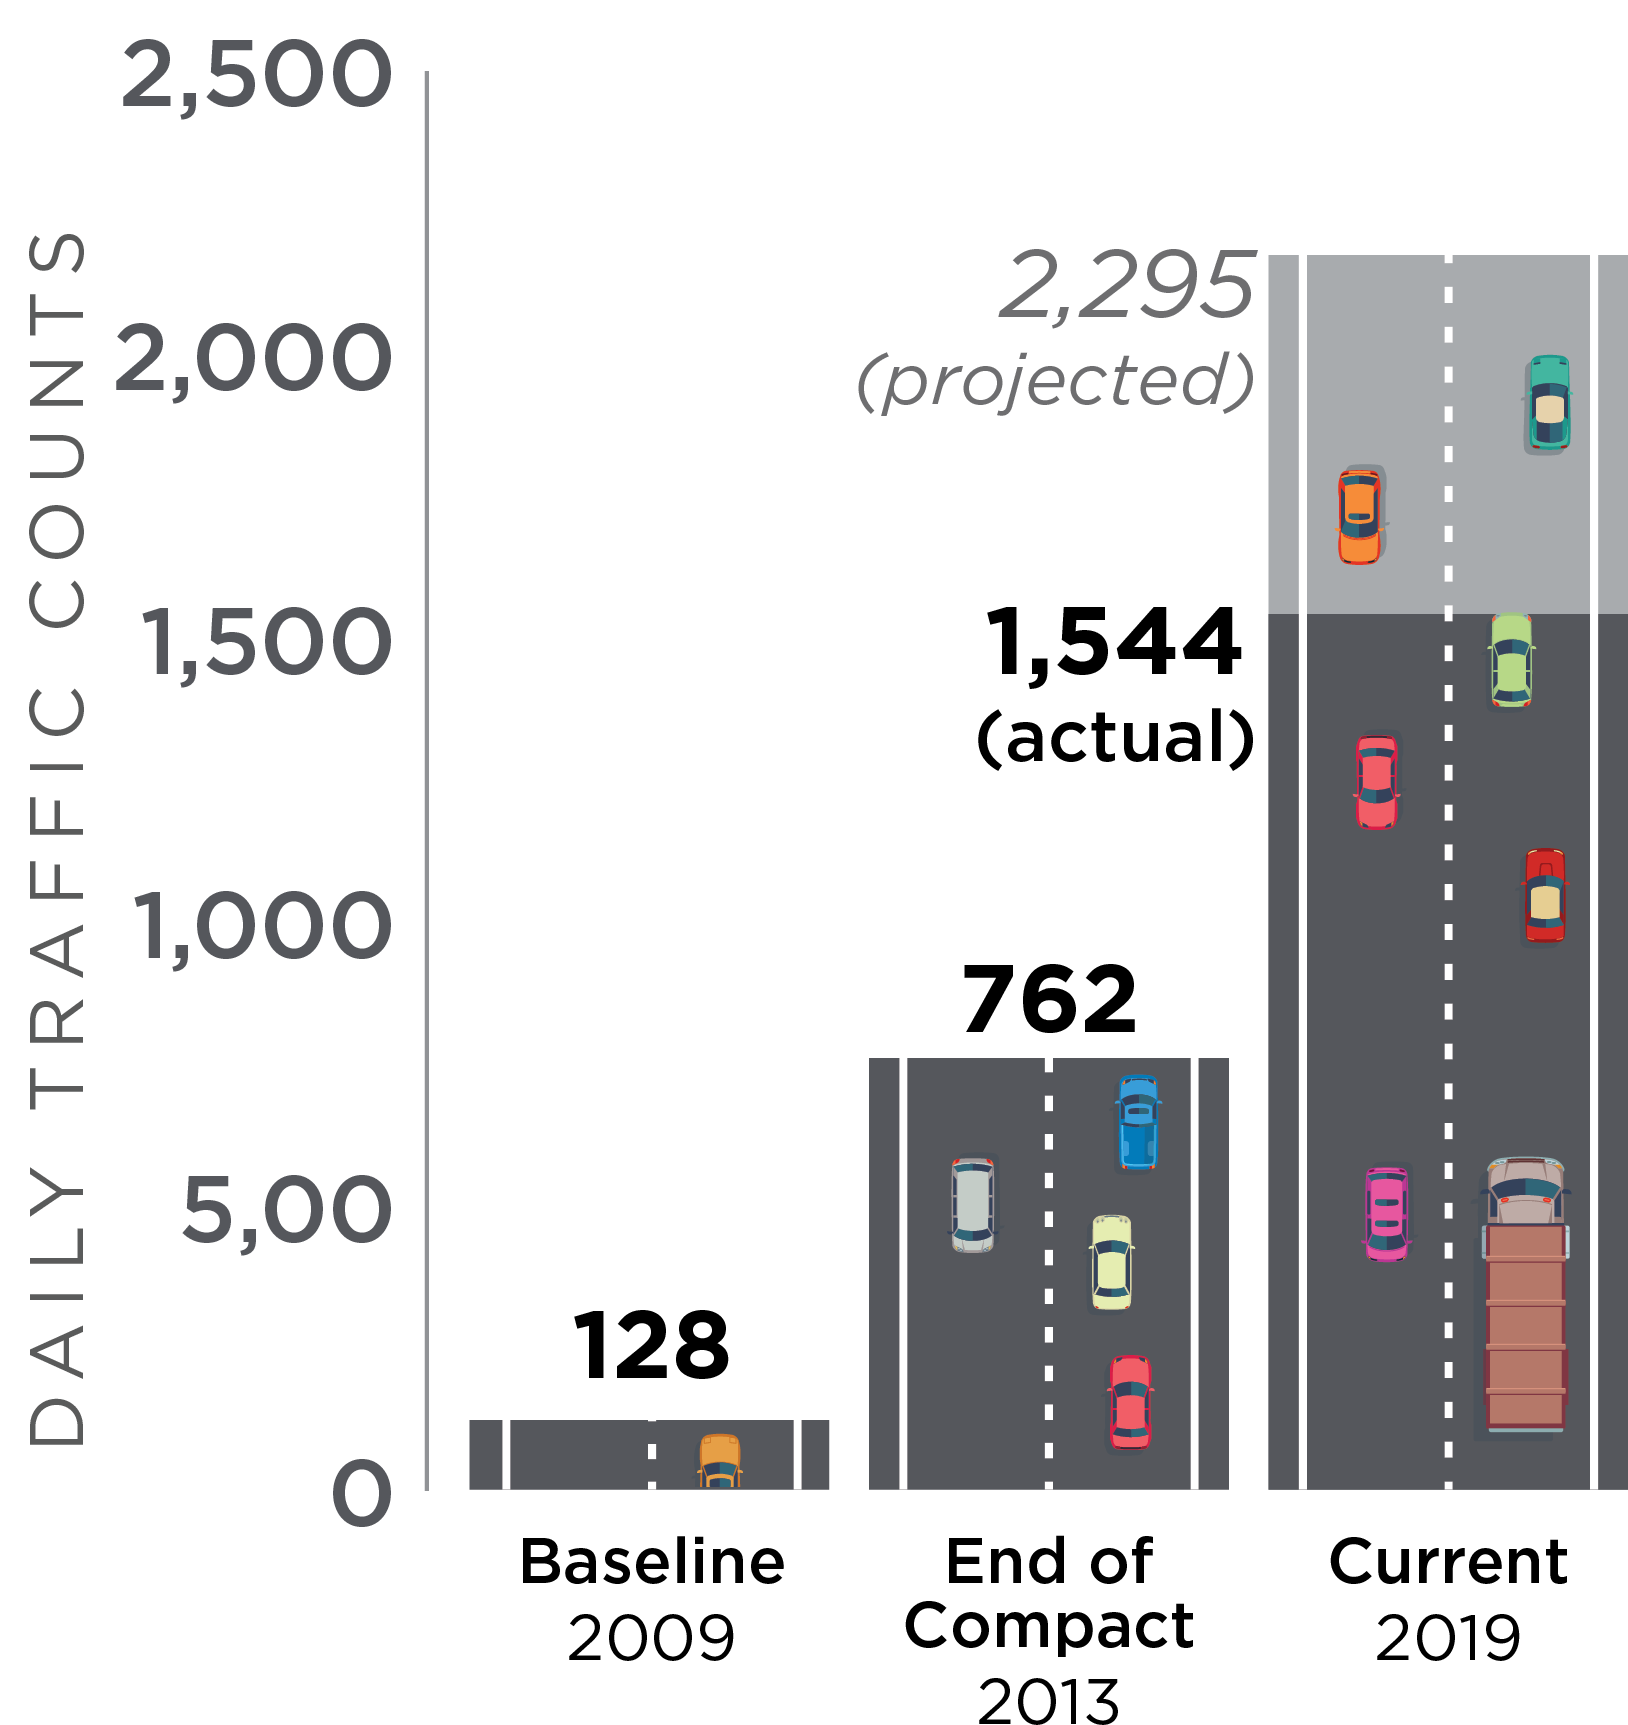 annual average daily traffic levels